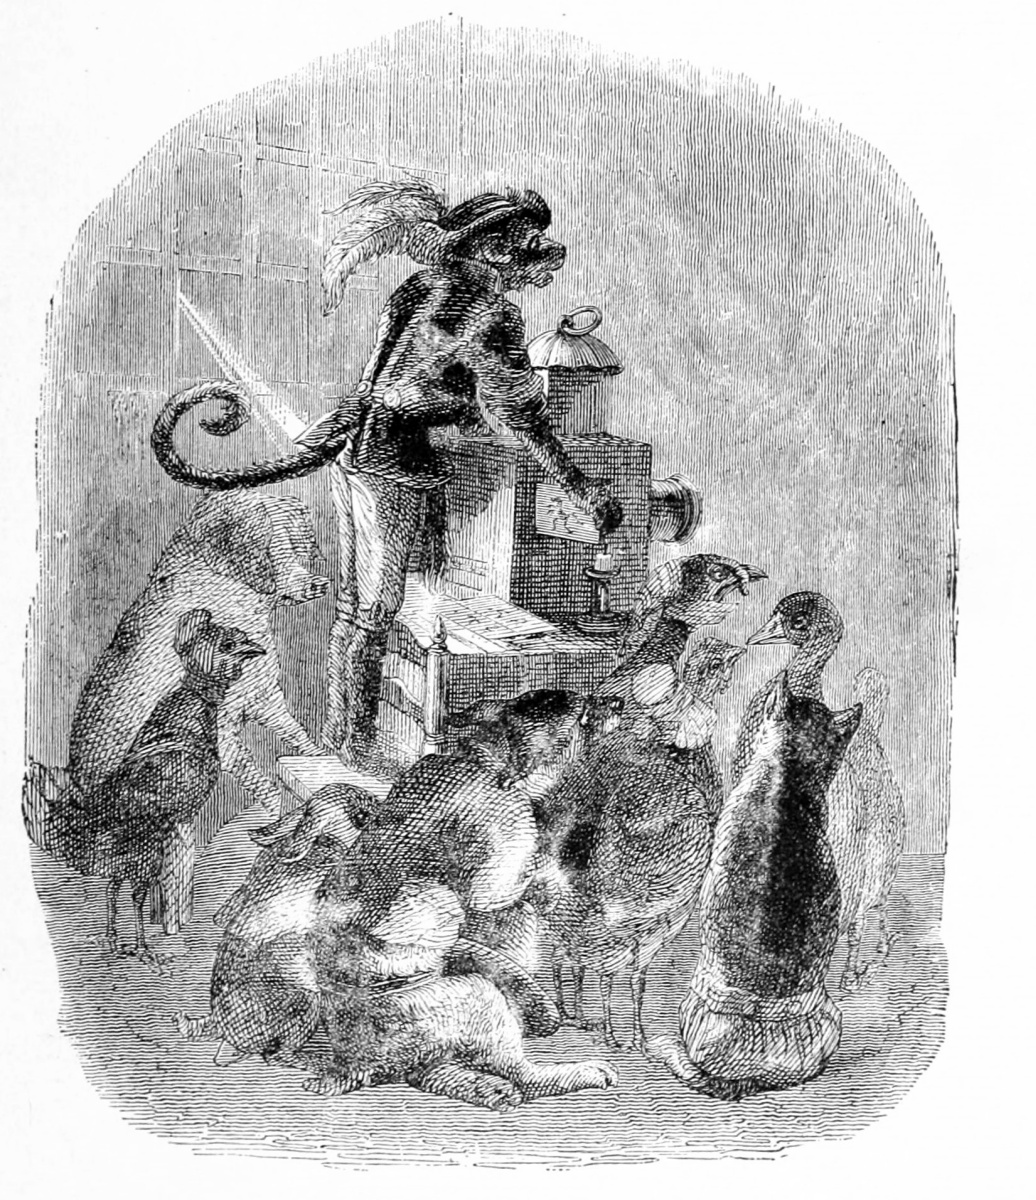 Jean Inias Isidore (Gerard) Granville. Monkey and the magic lantern. Illustrations to the fables of Florian